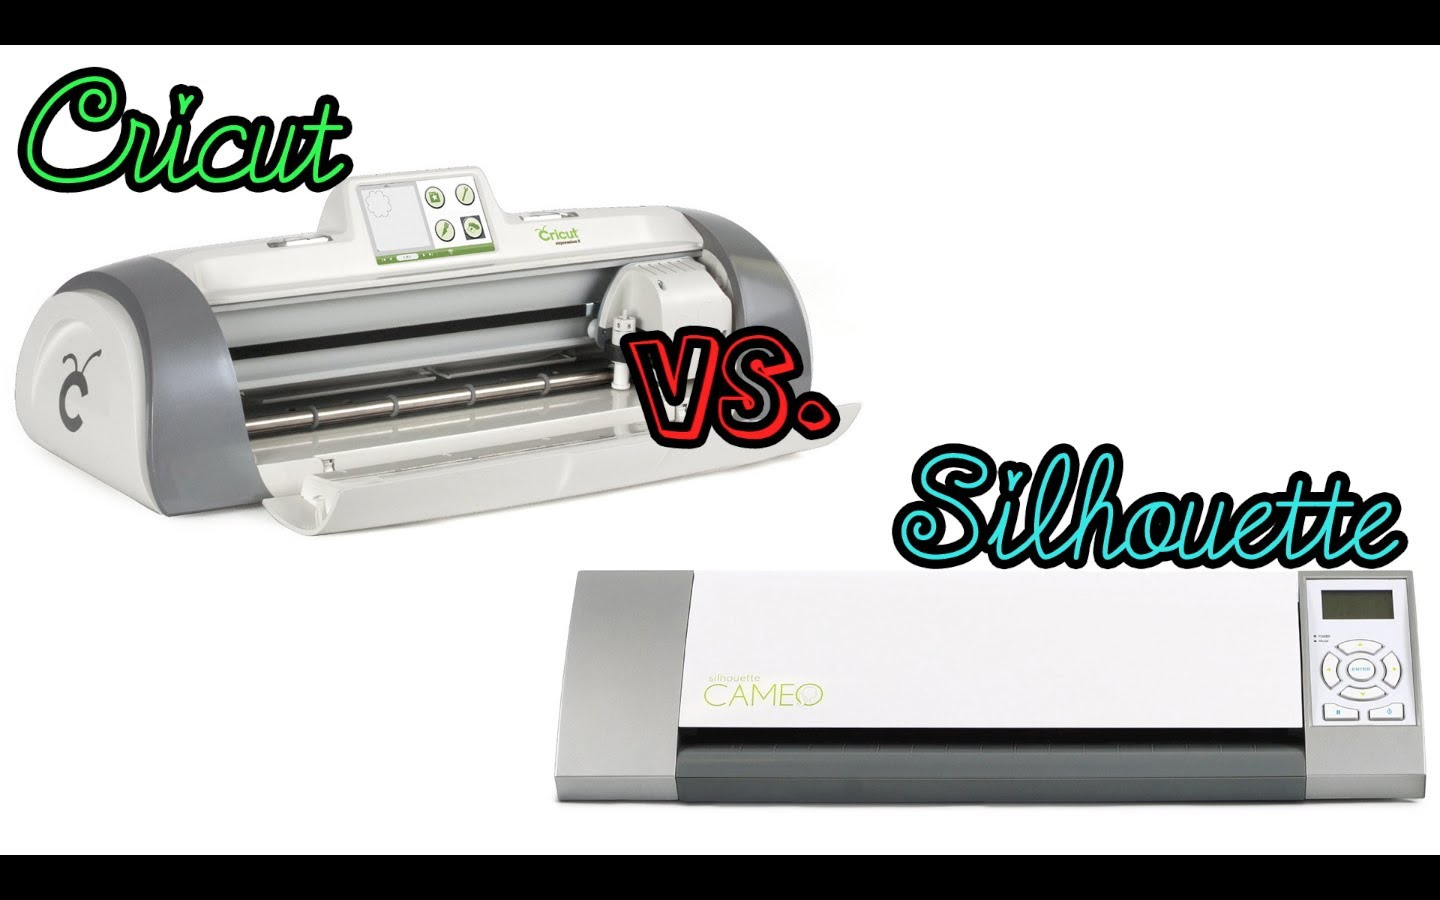 Cricut Expression 2 vs Silhouette Cameo